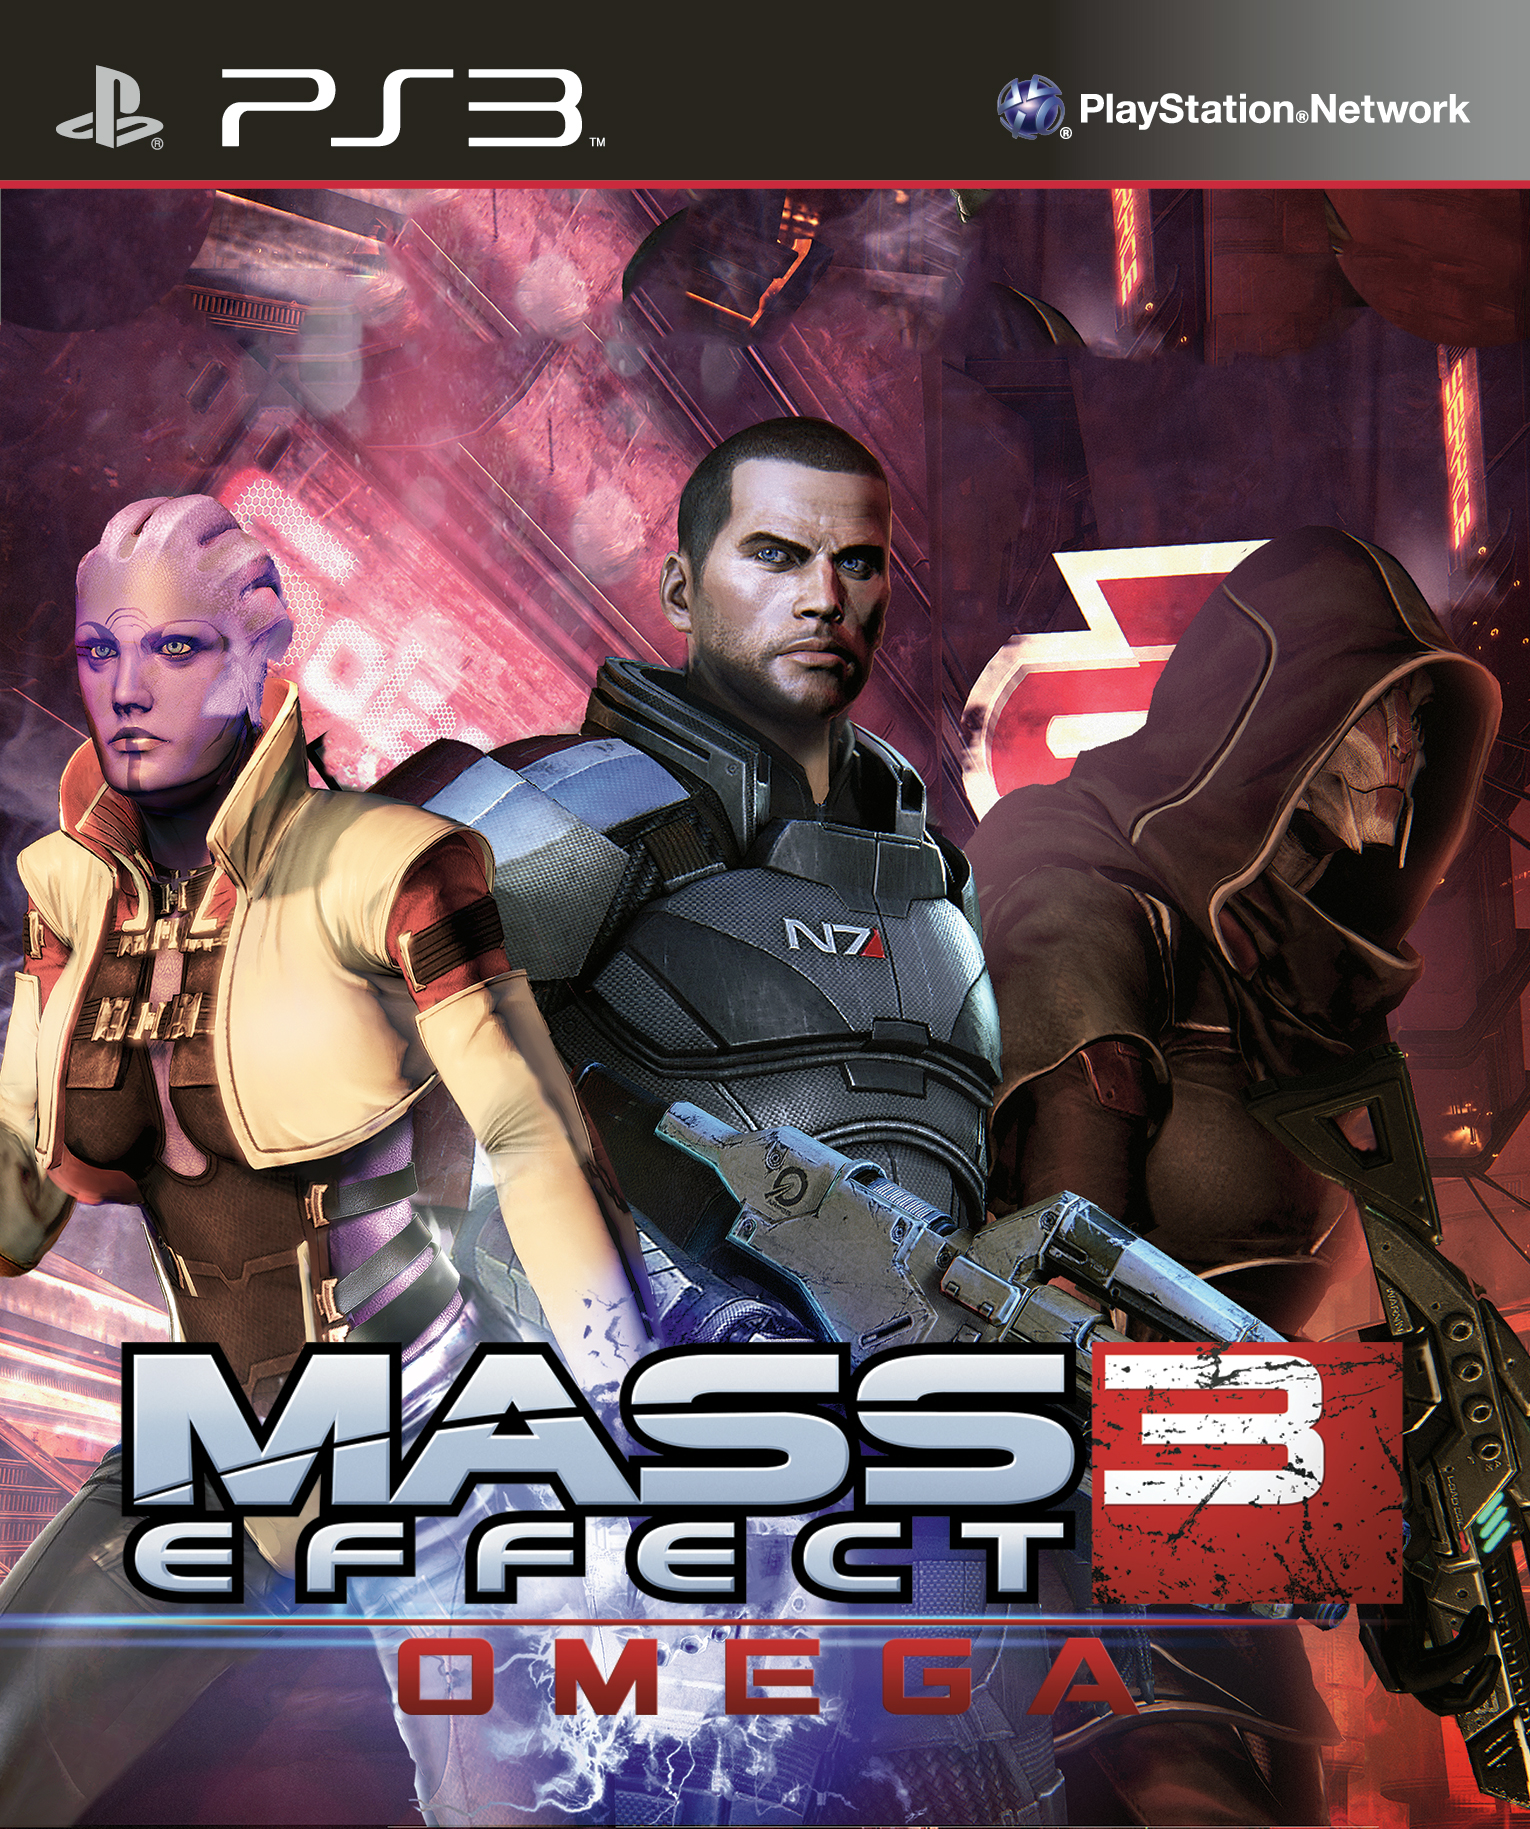 Mass Effect 3: Omega PlayStation 3